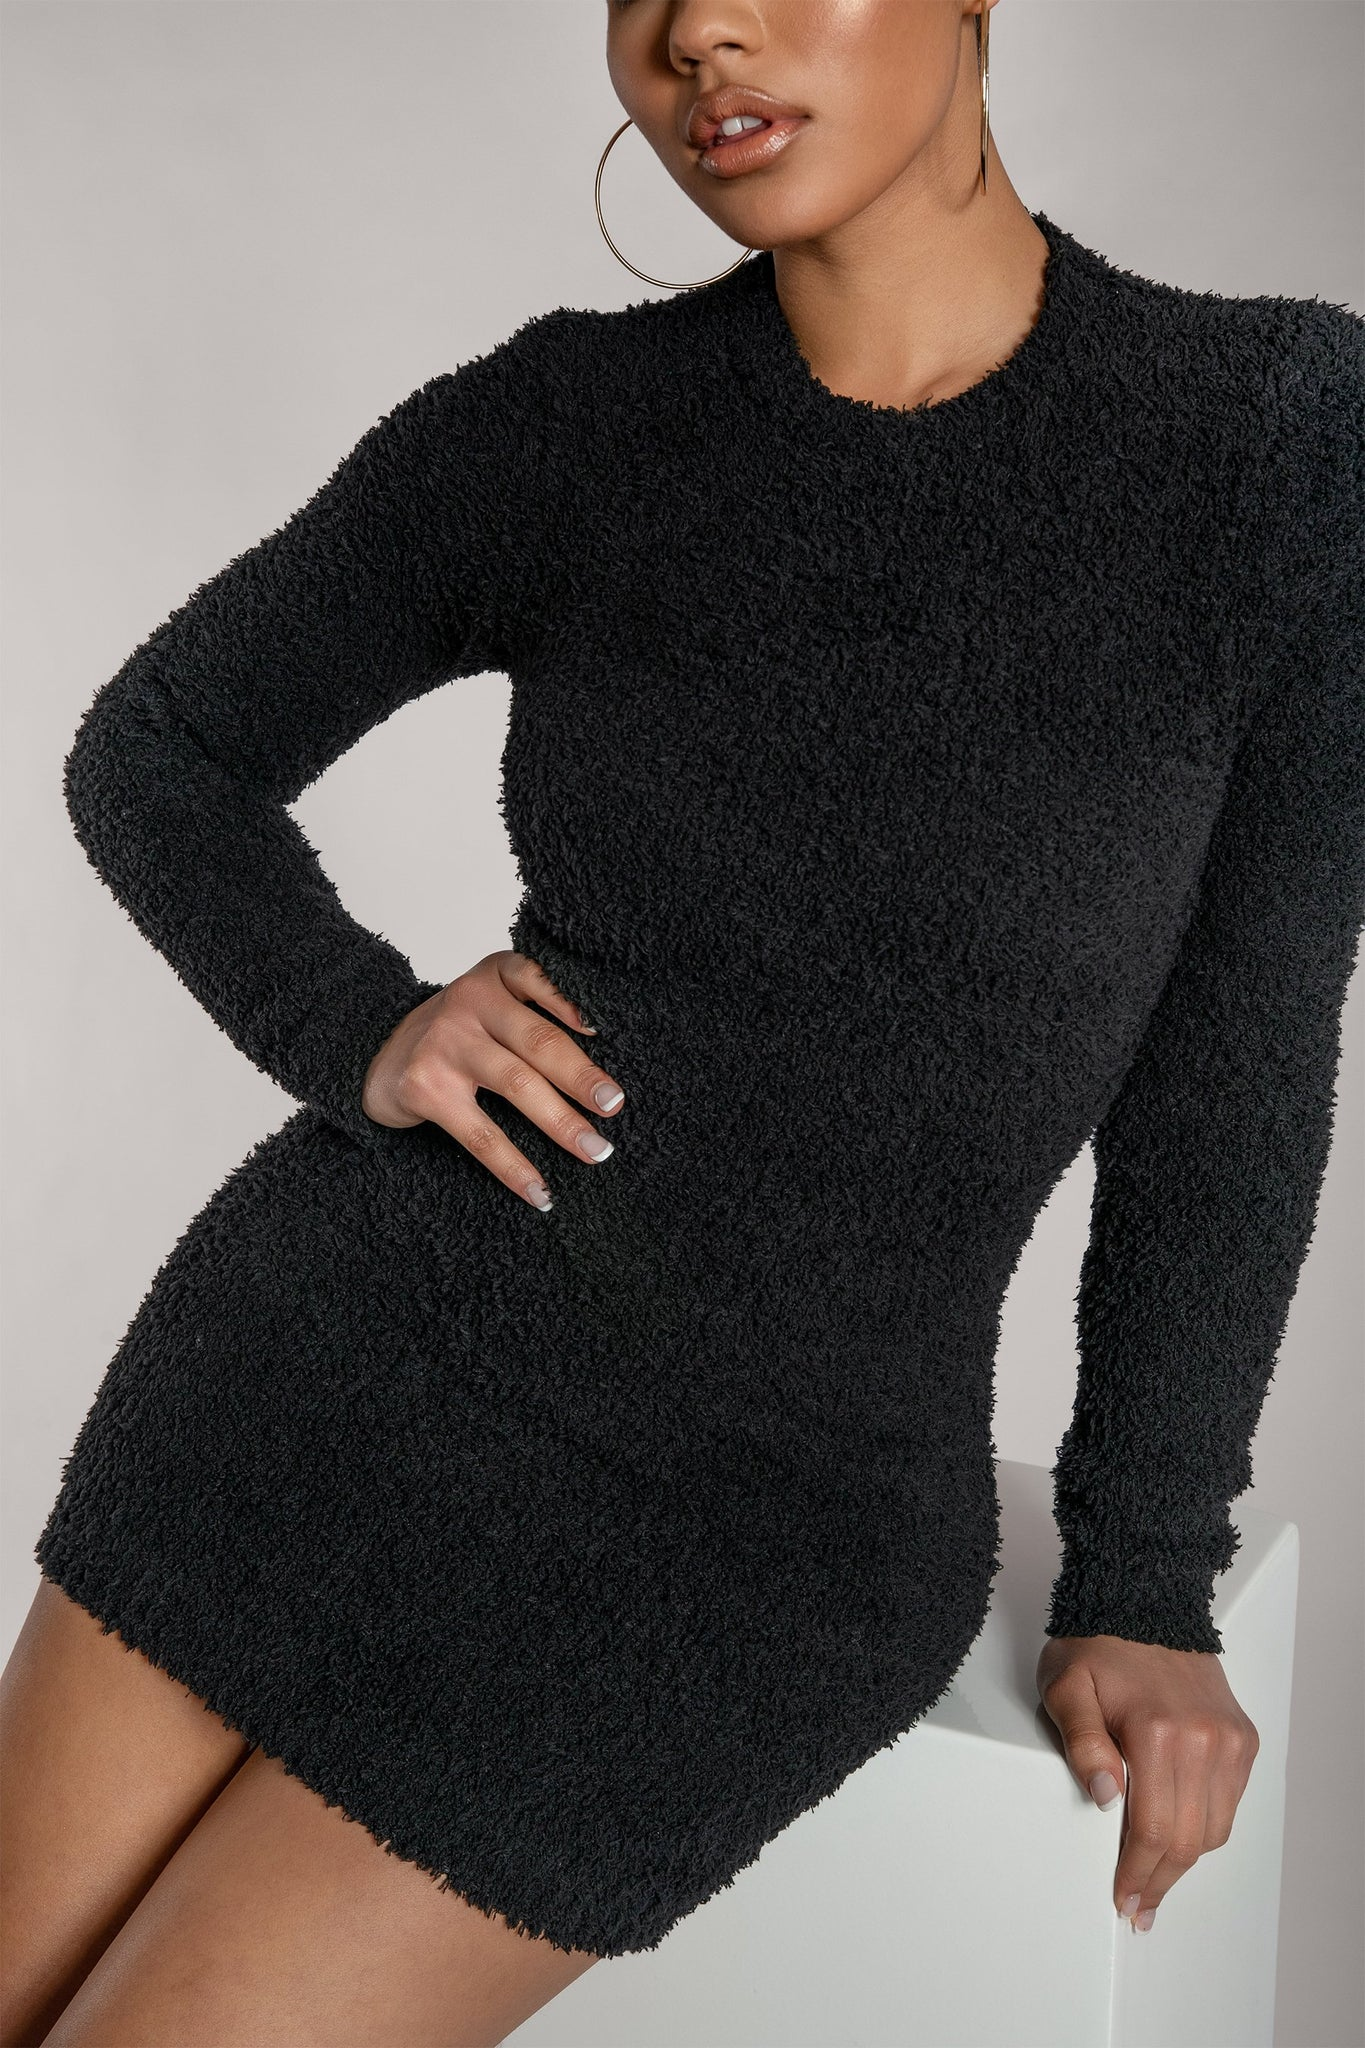 Lorin Popcorn Cut Out Back Long Sleeve Mini Dress - Black - MESHKI